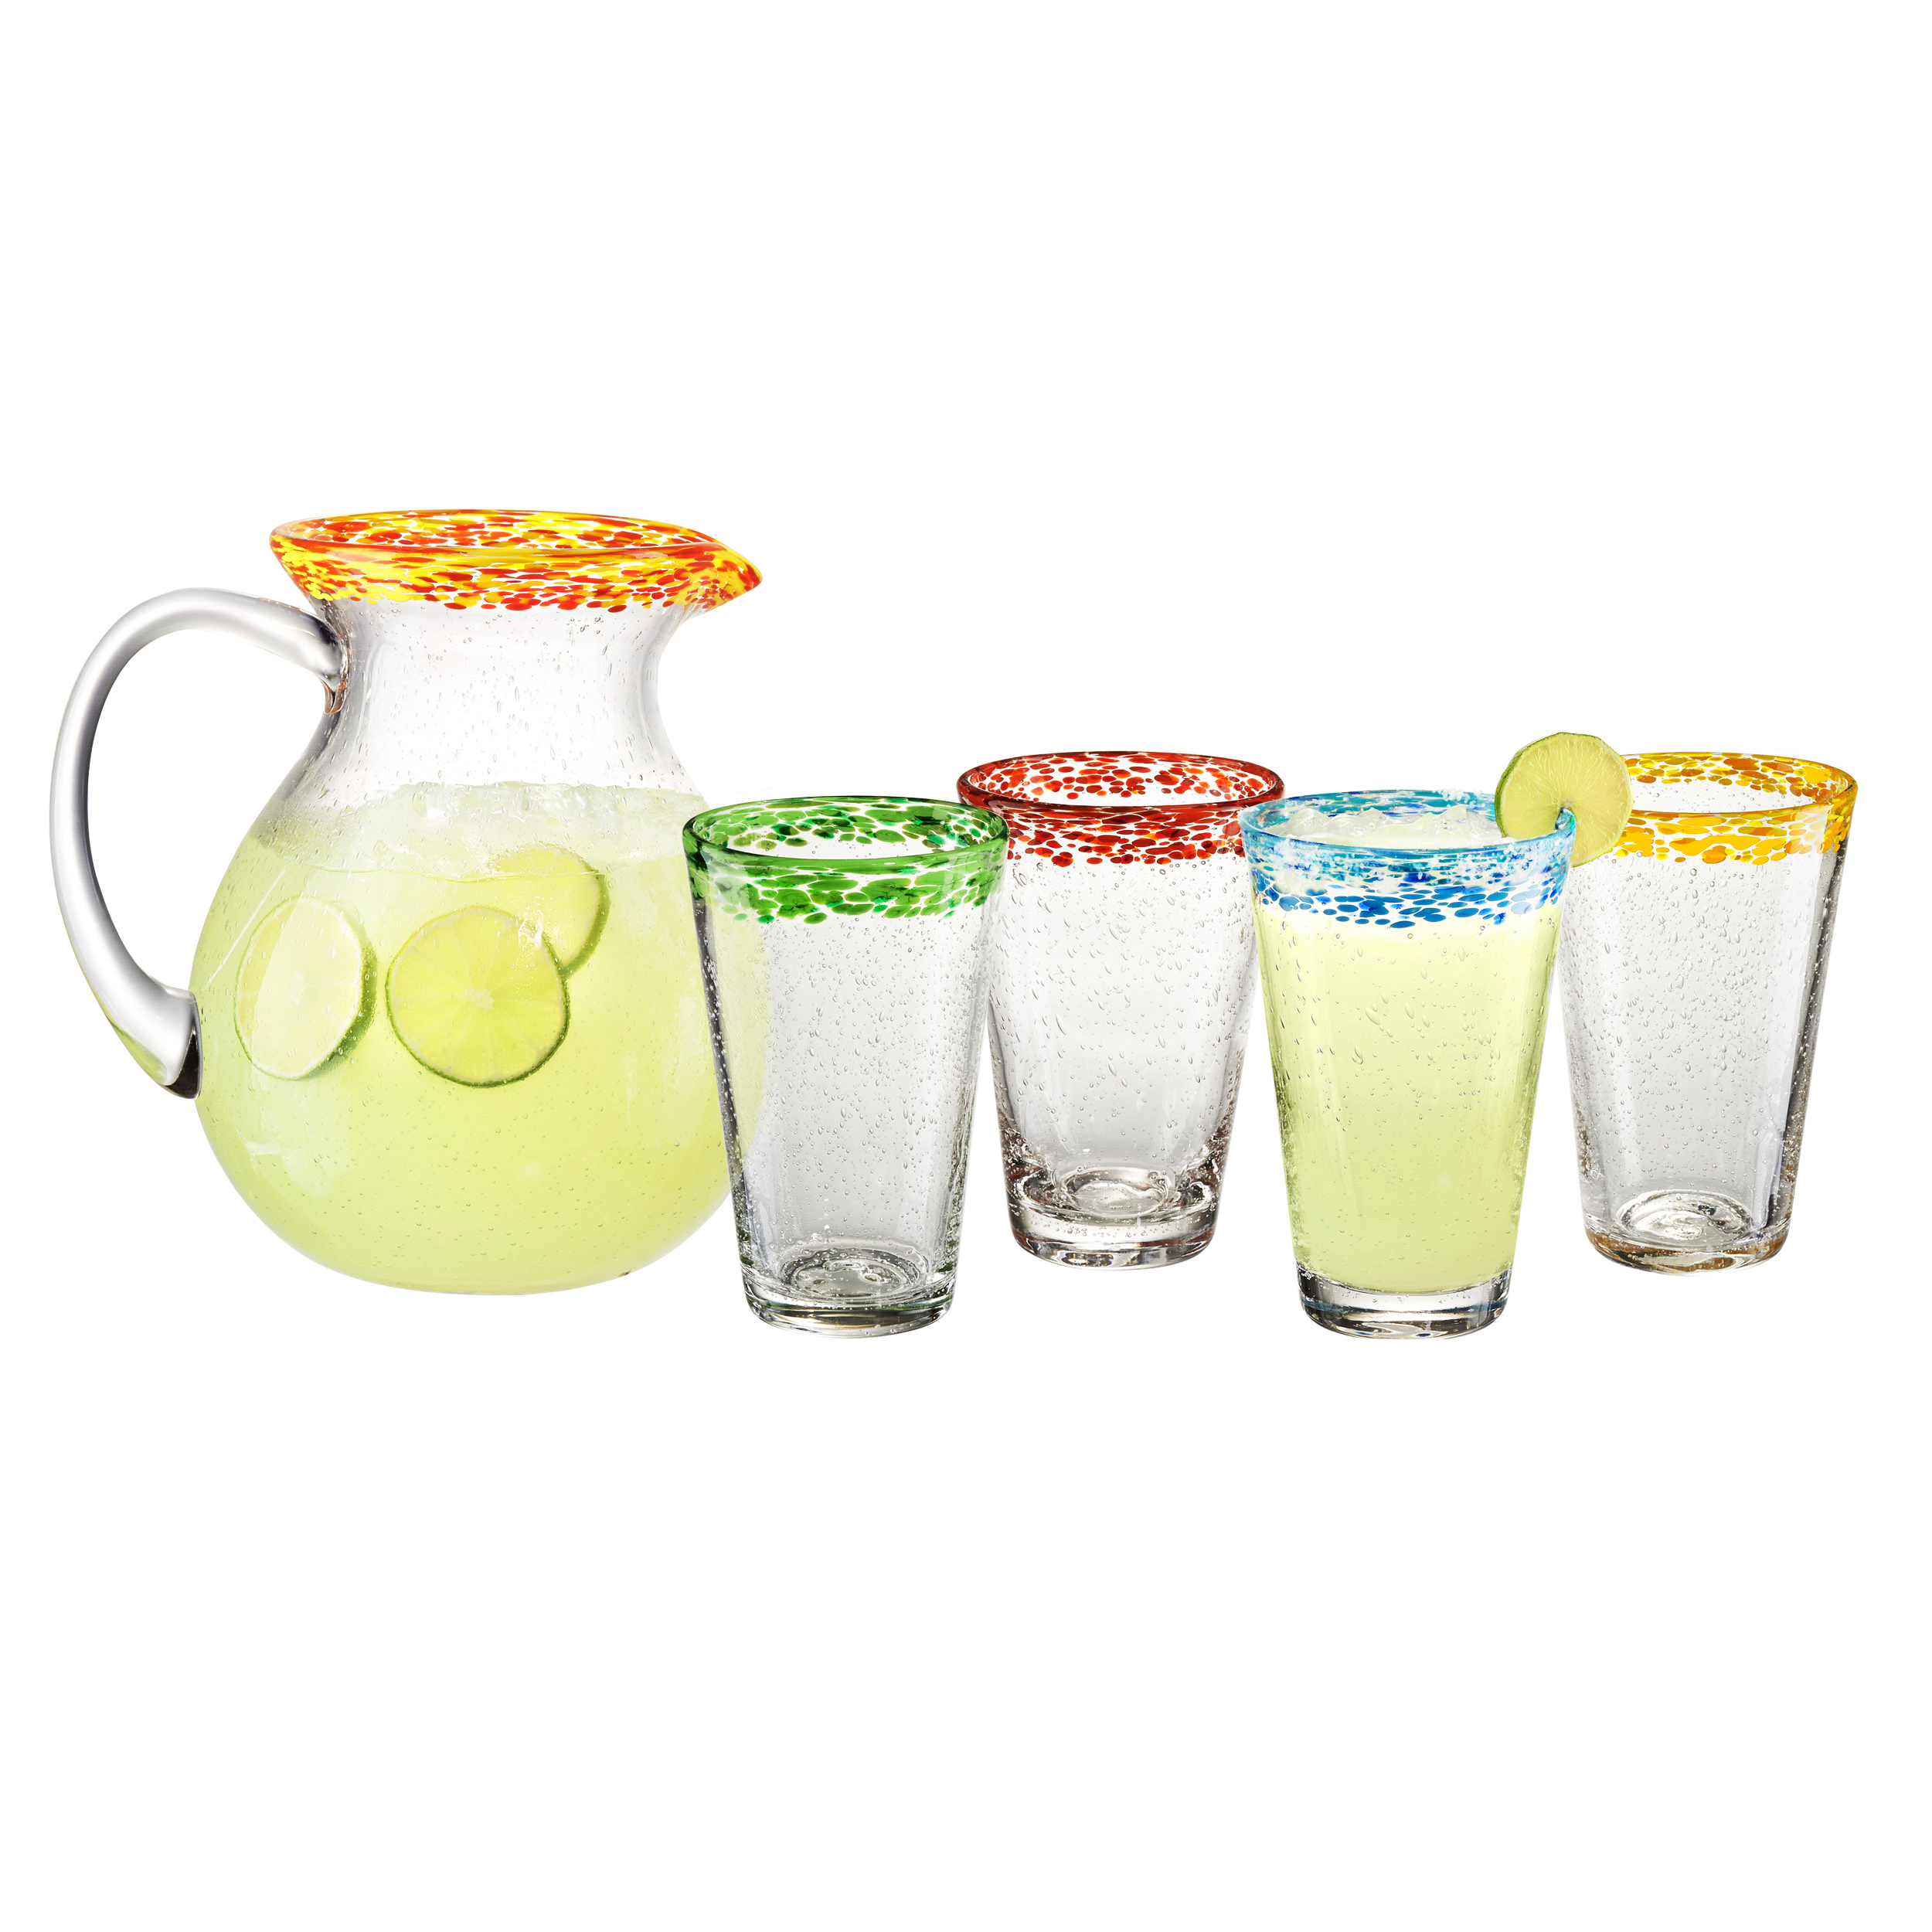 Artland Mingle 5 Piece Glass Beverage Pitcher and Tumbler Set